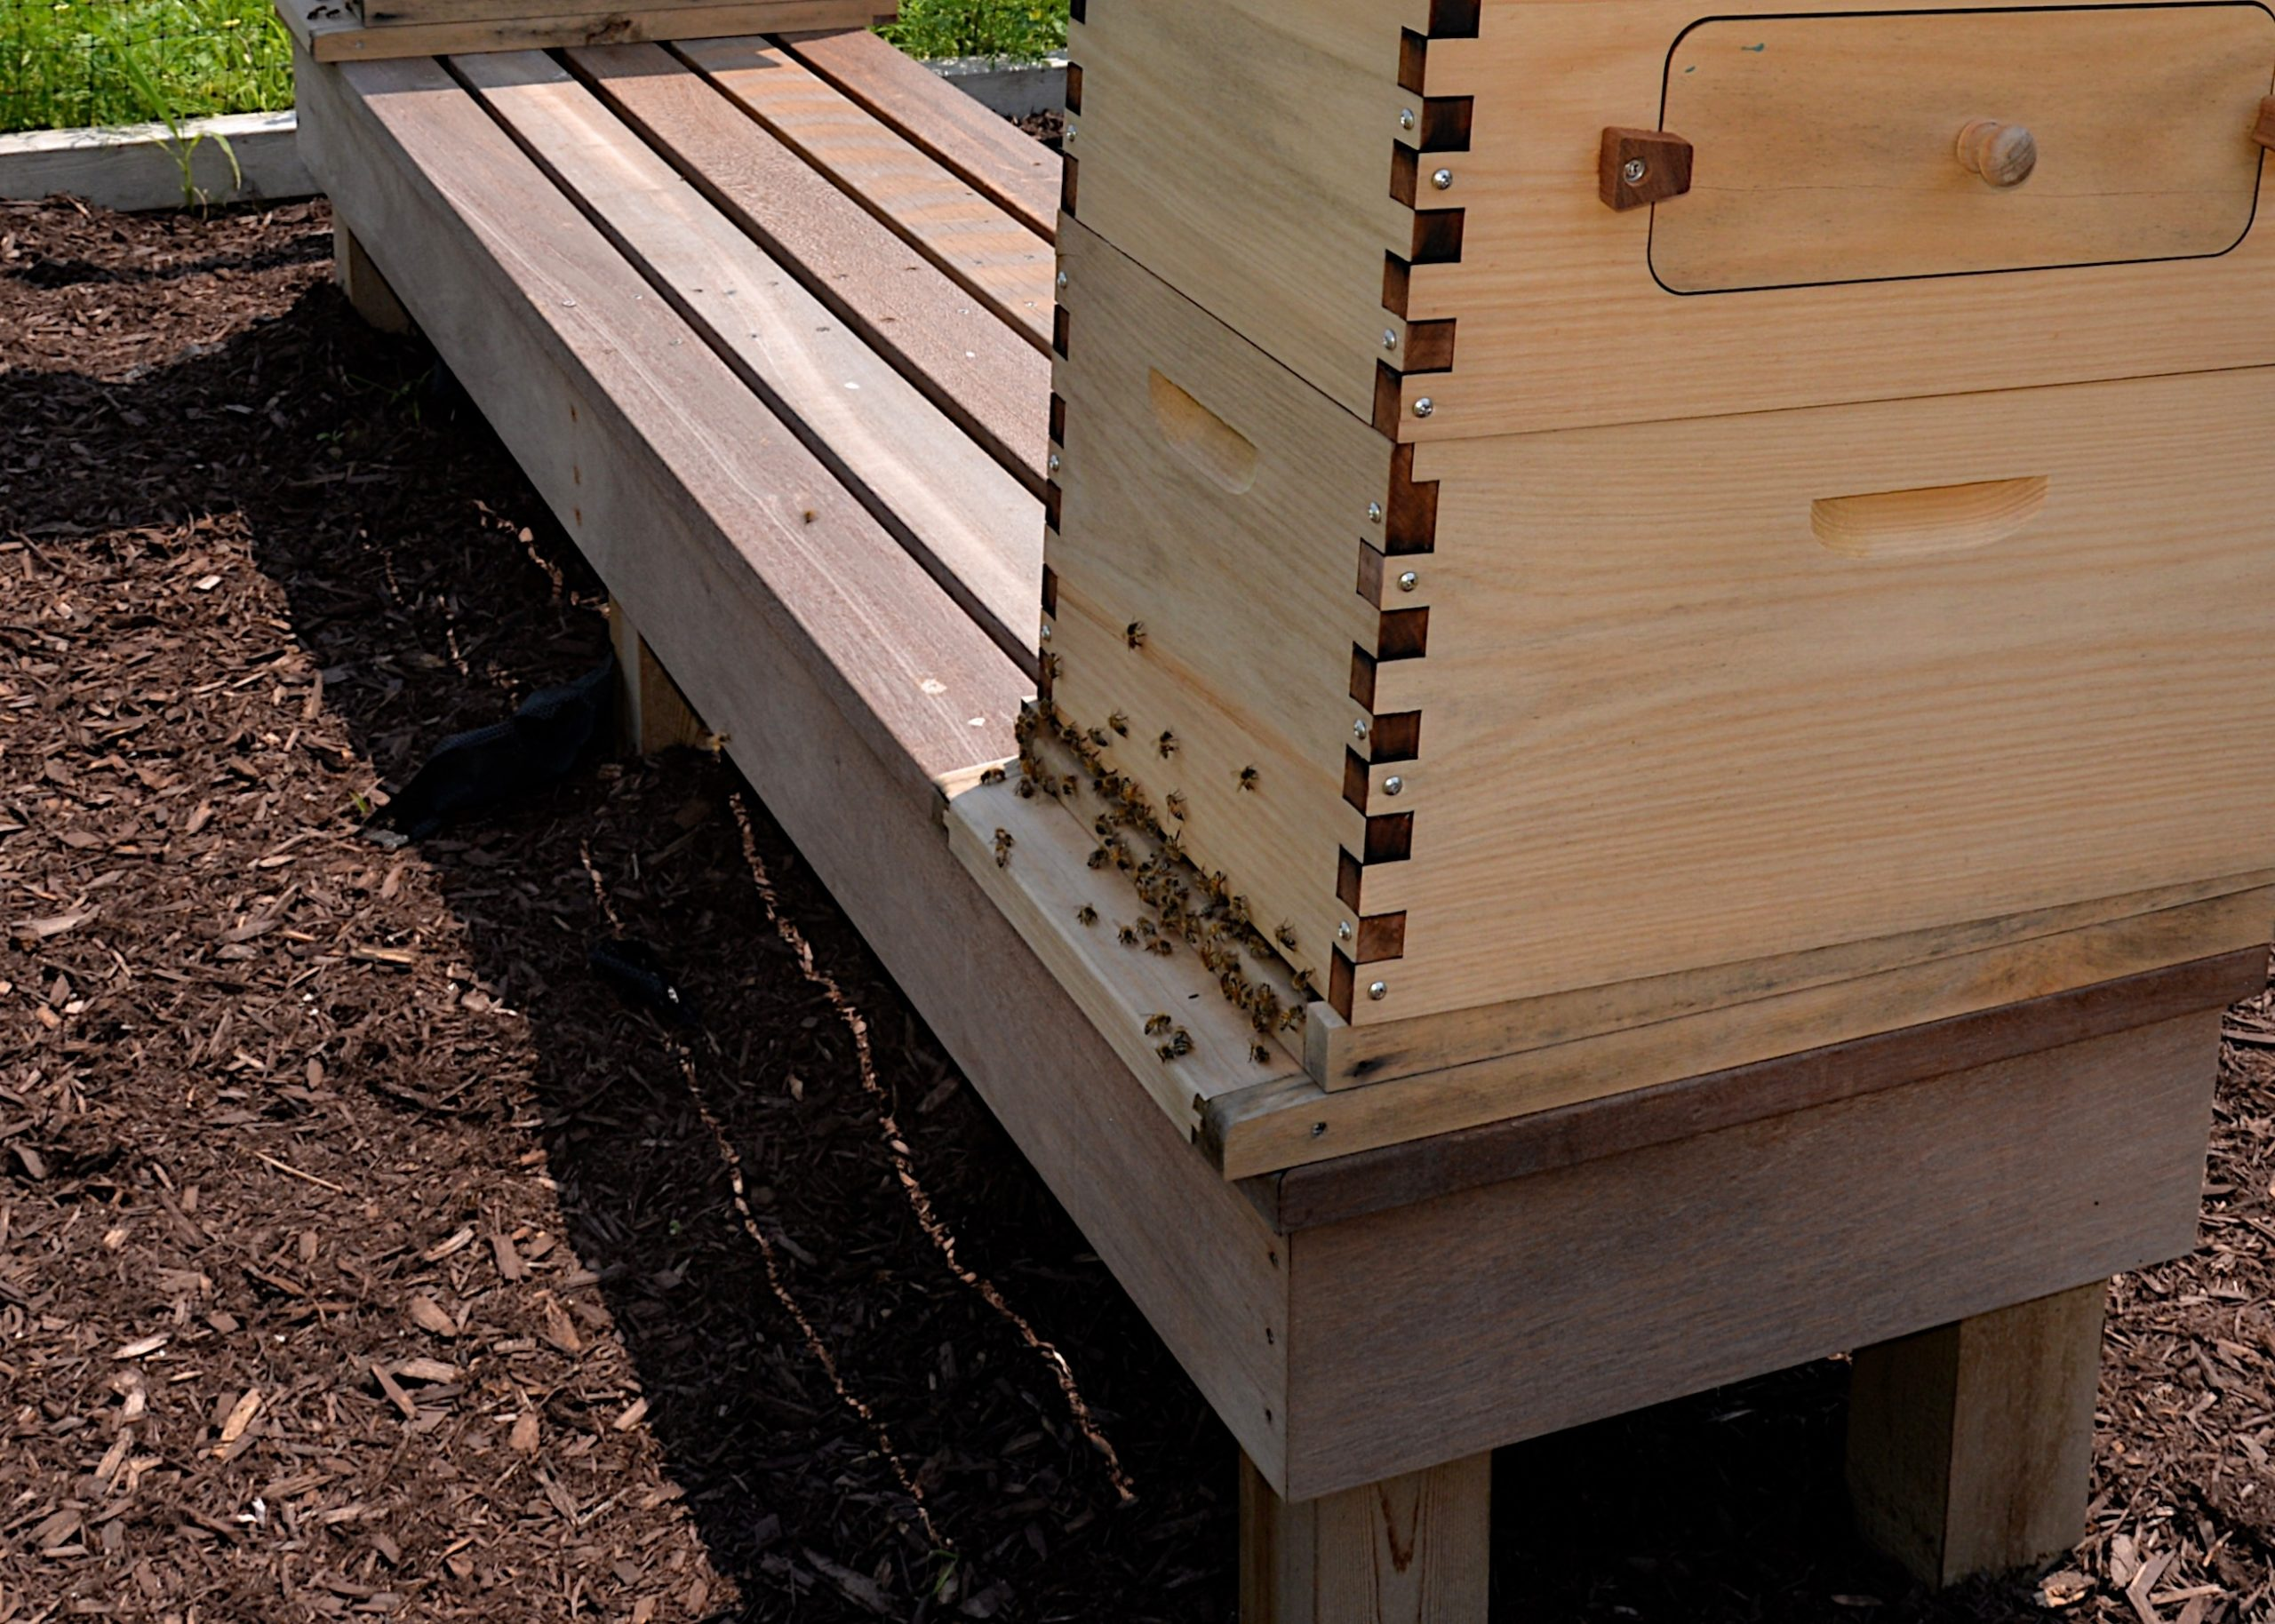 A beehive at the Wainscott agrihood.